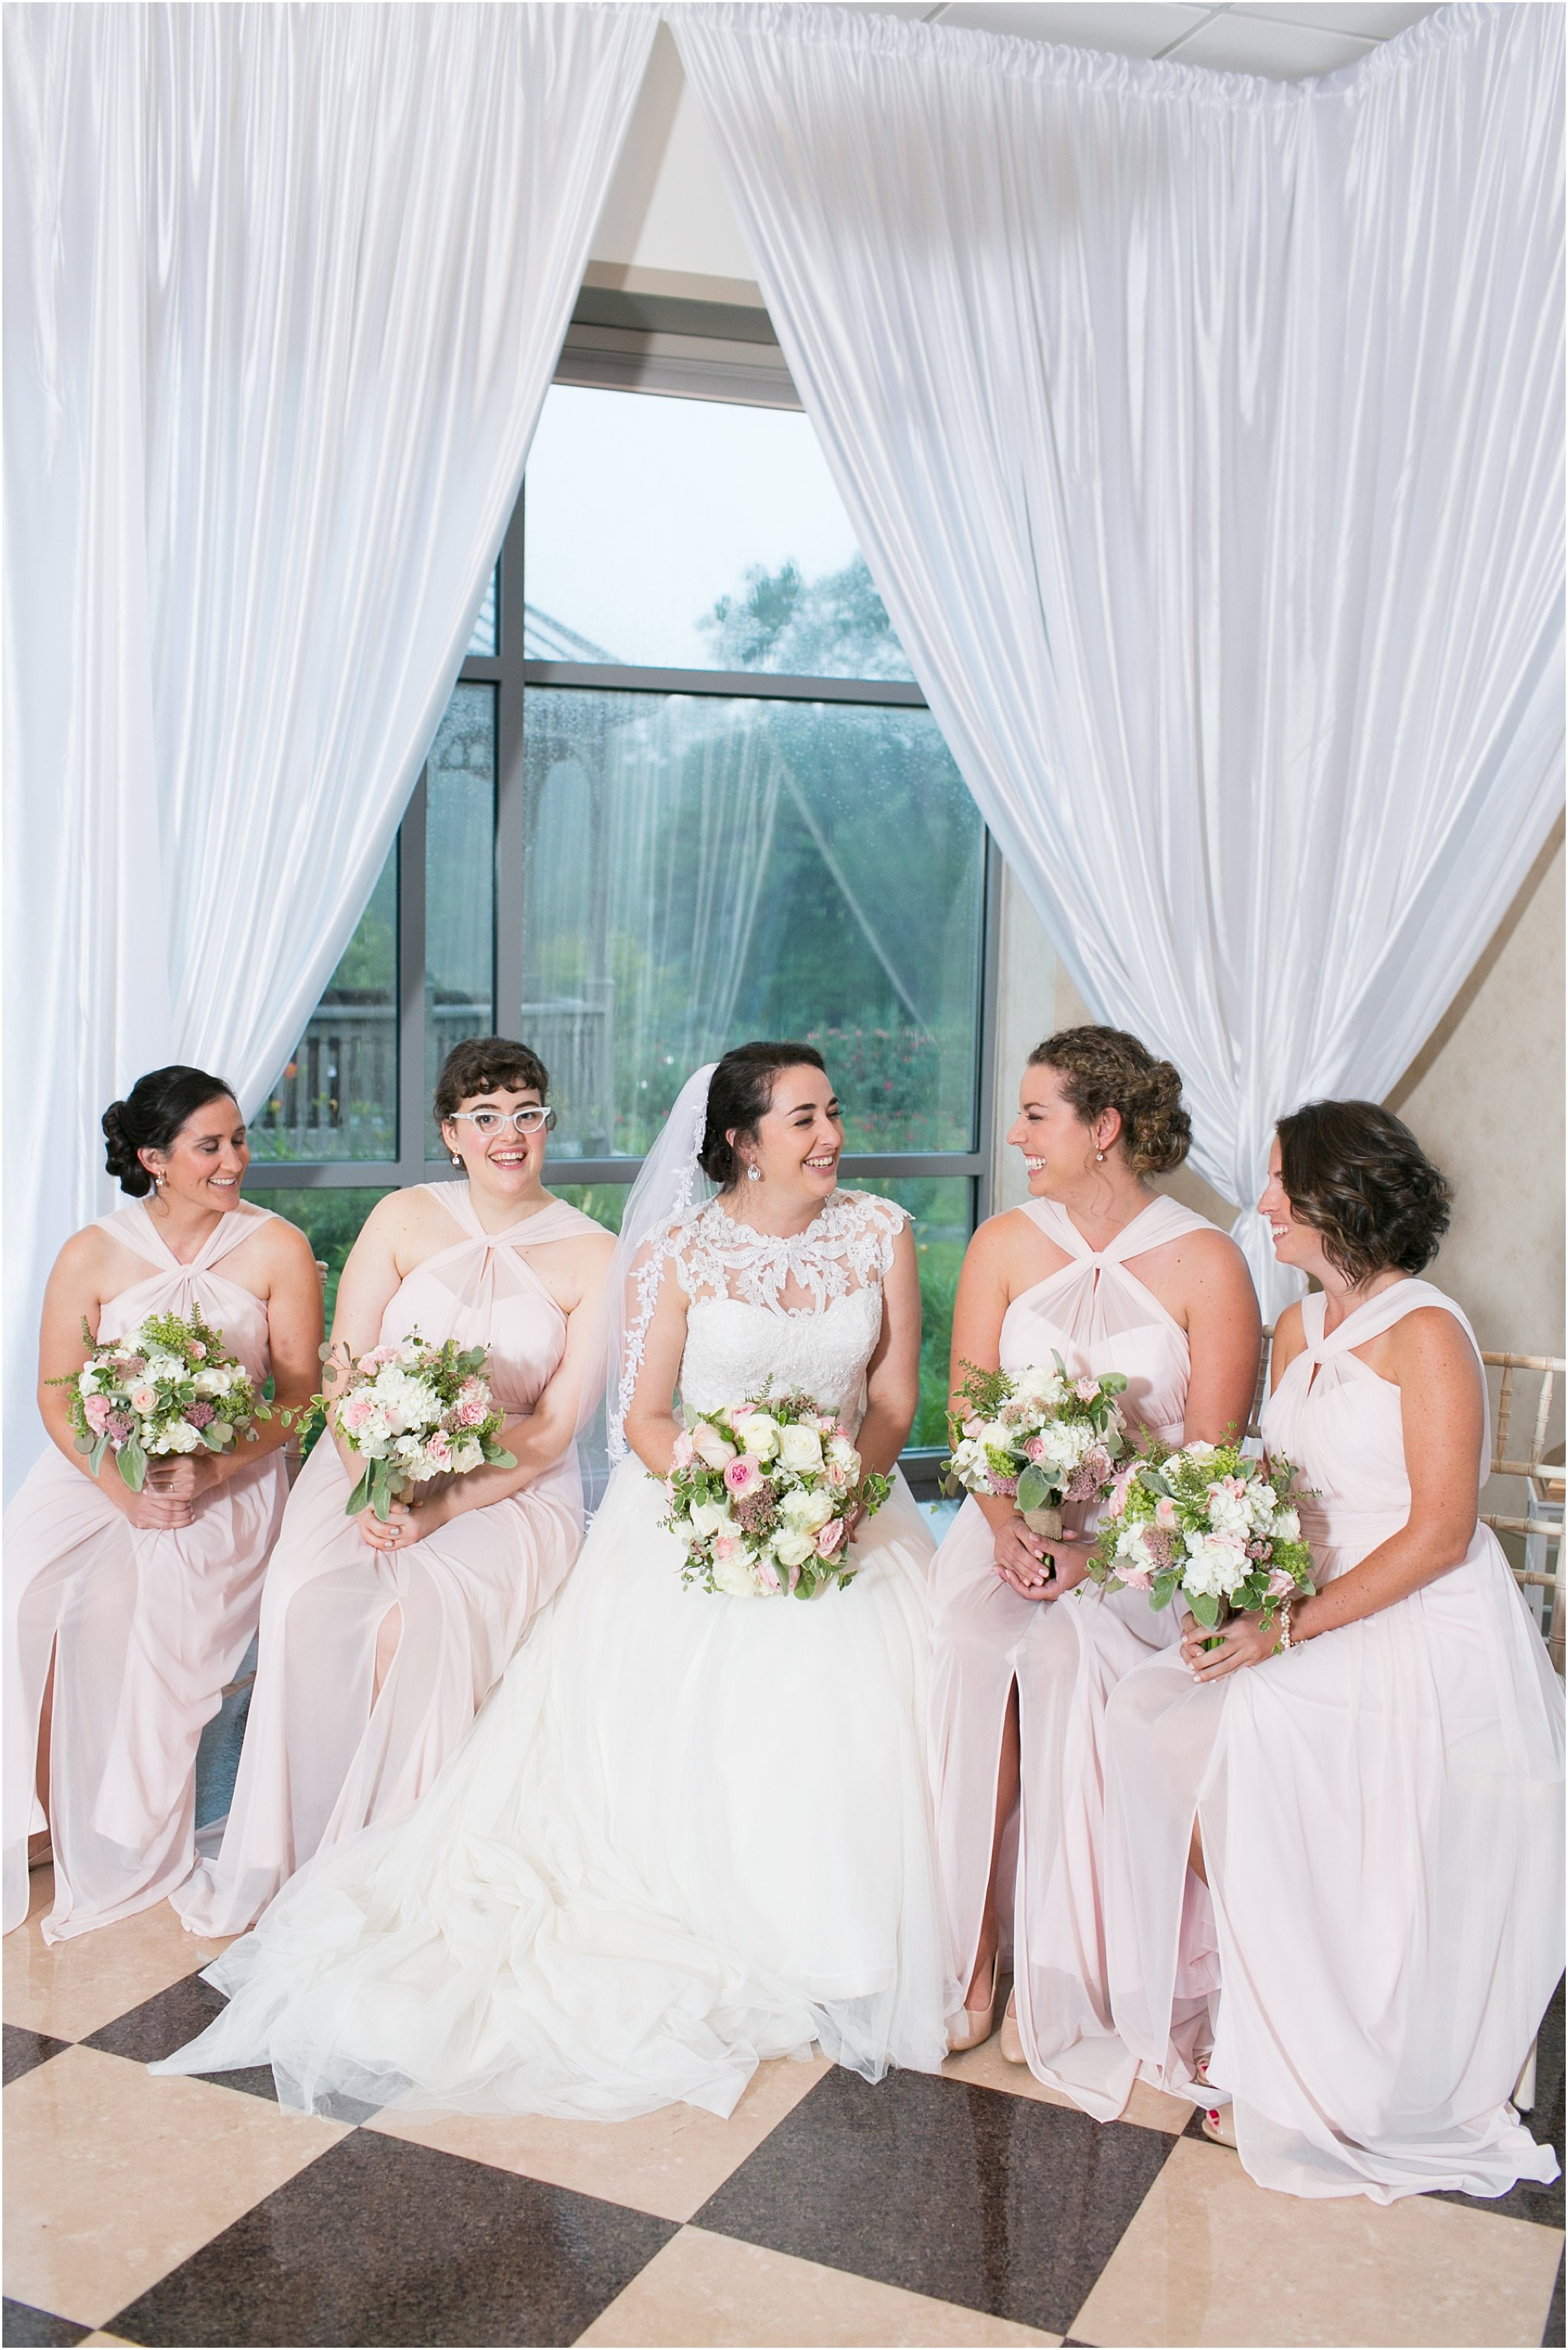 jessica_ryan_photography_virginia_wedding_photographer_wedding_hurricane_norfolk_botanical_gardens_hurricane_matthew_wedding_3585